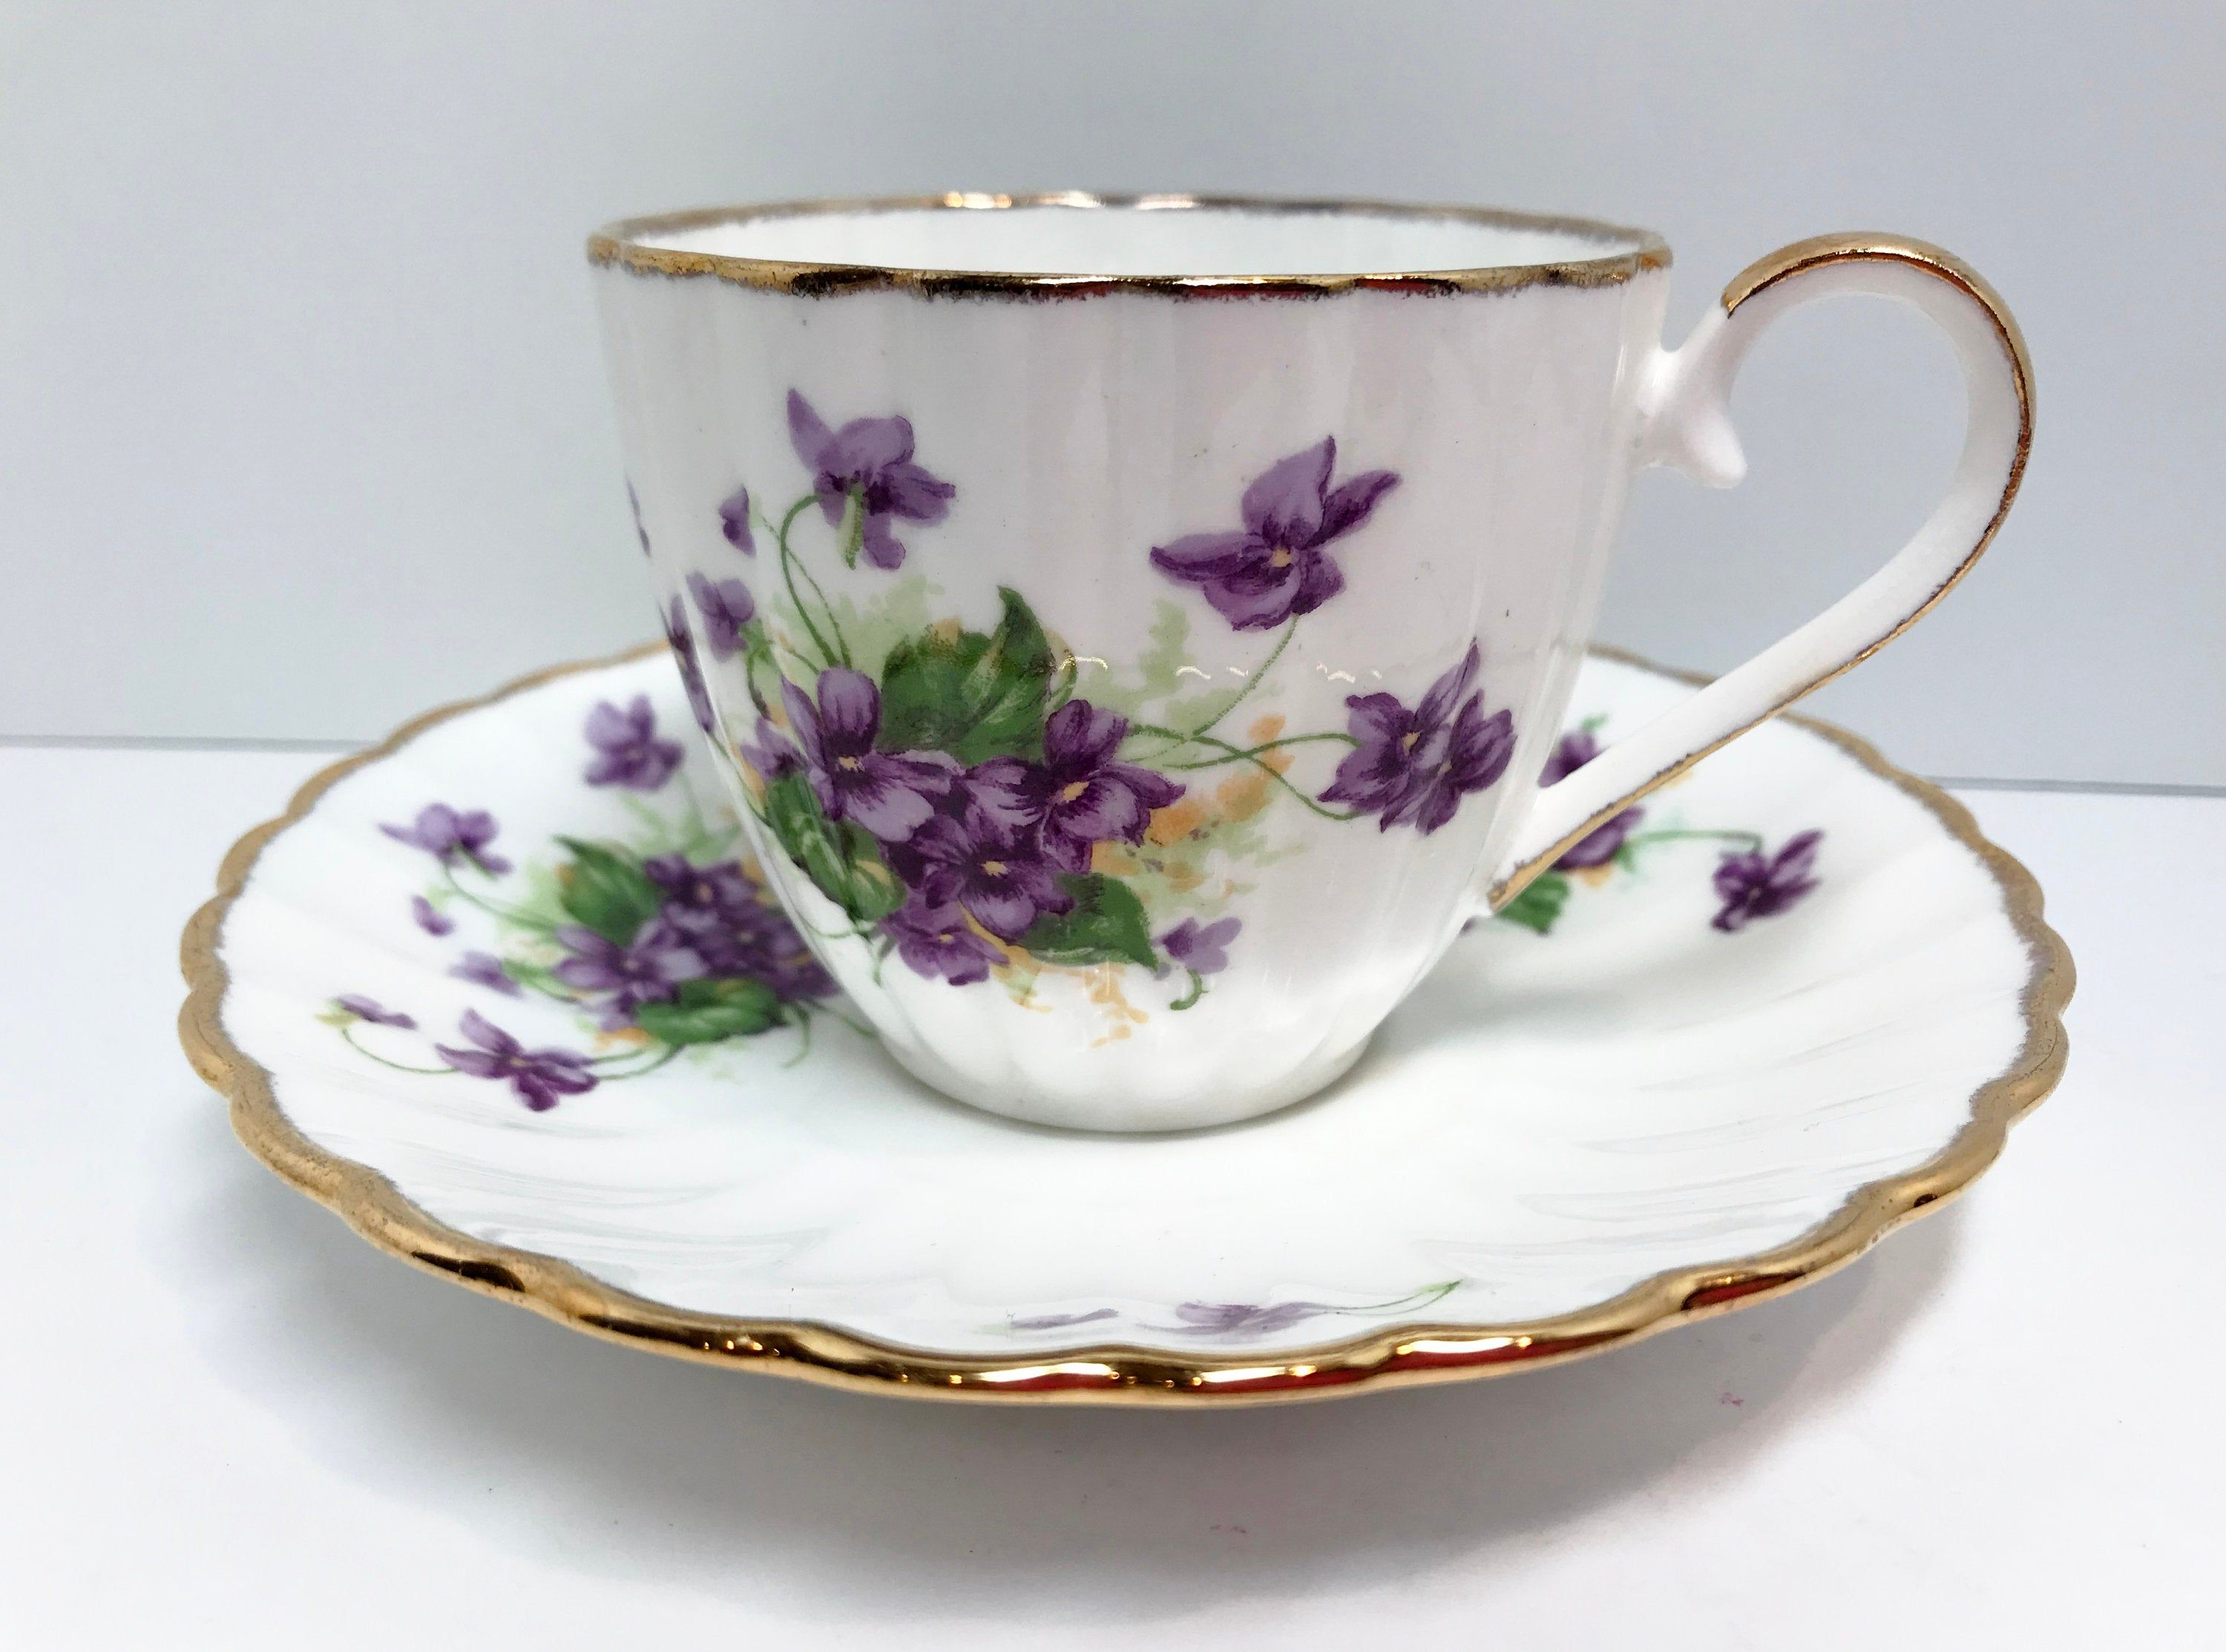 Jason Teacup and Saucer, Violets Tea Cup, Floral Teacup, Antique Tea Cups Vintage, English Bone China Cups, Antique Teacups Vintage, Teatime #teacups